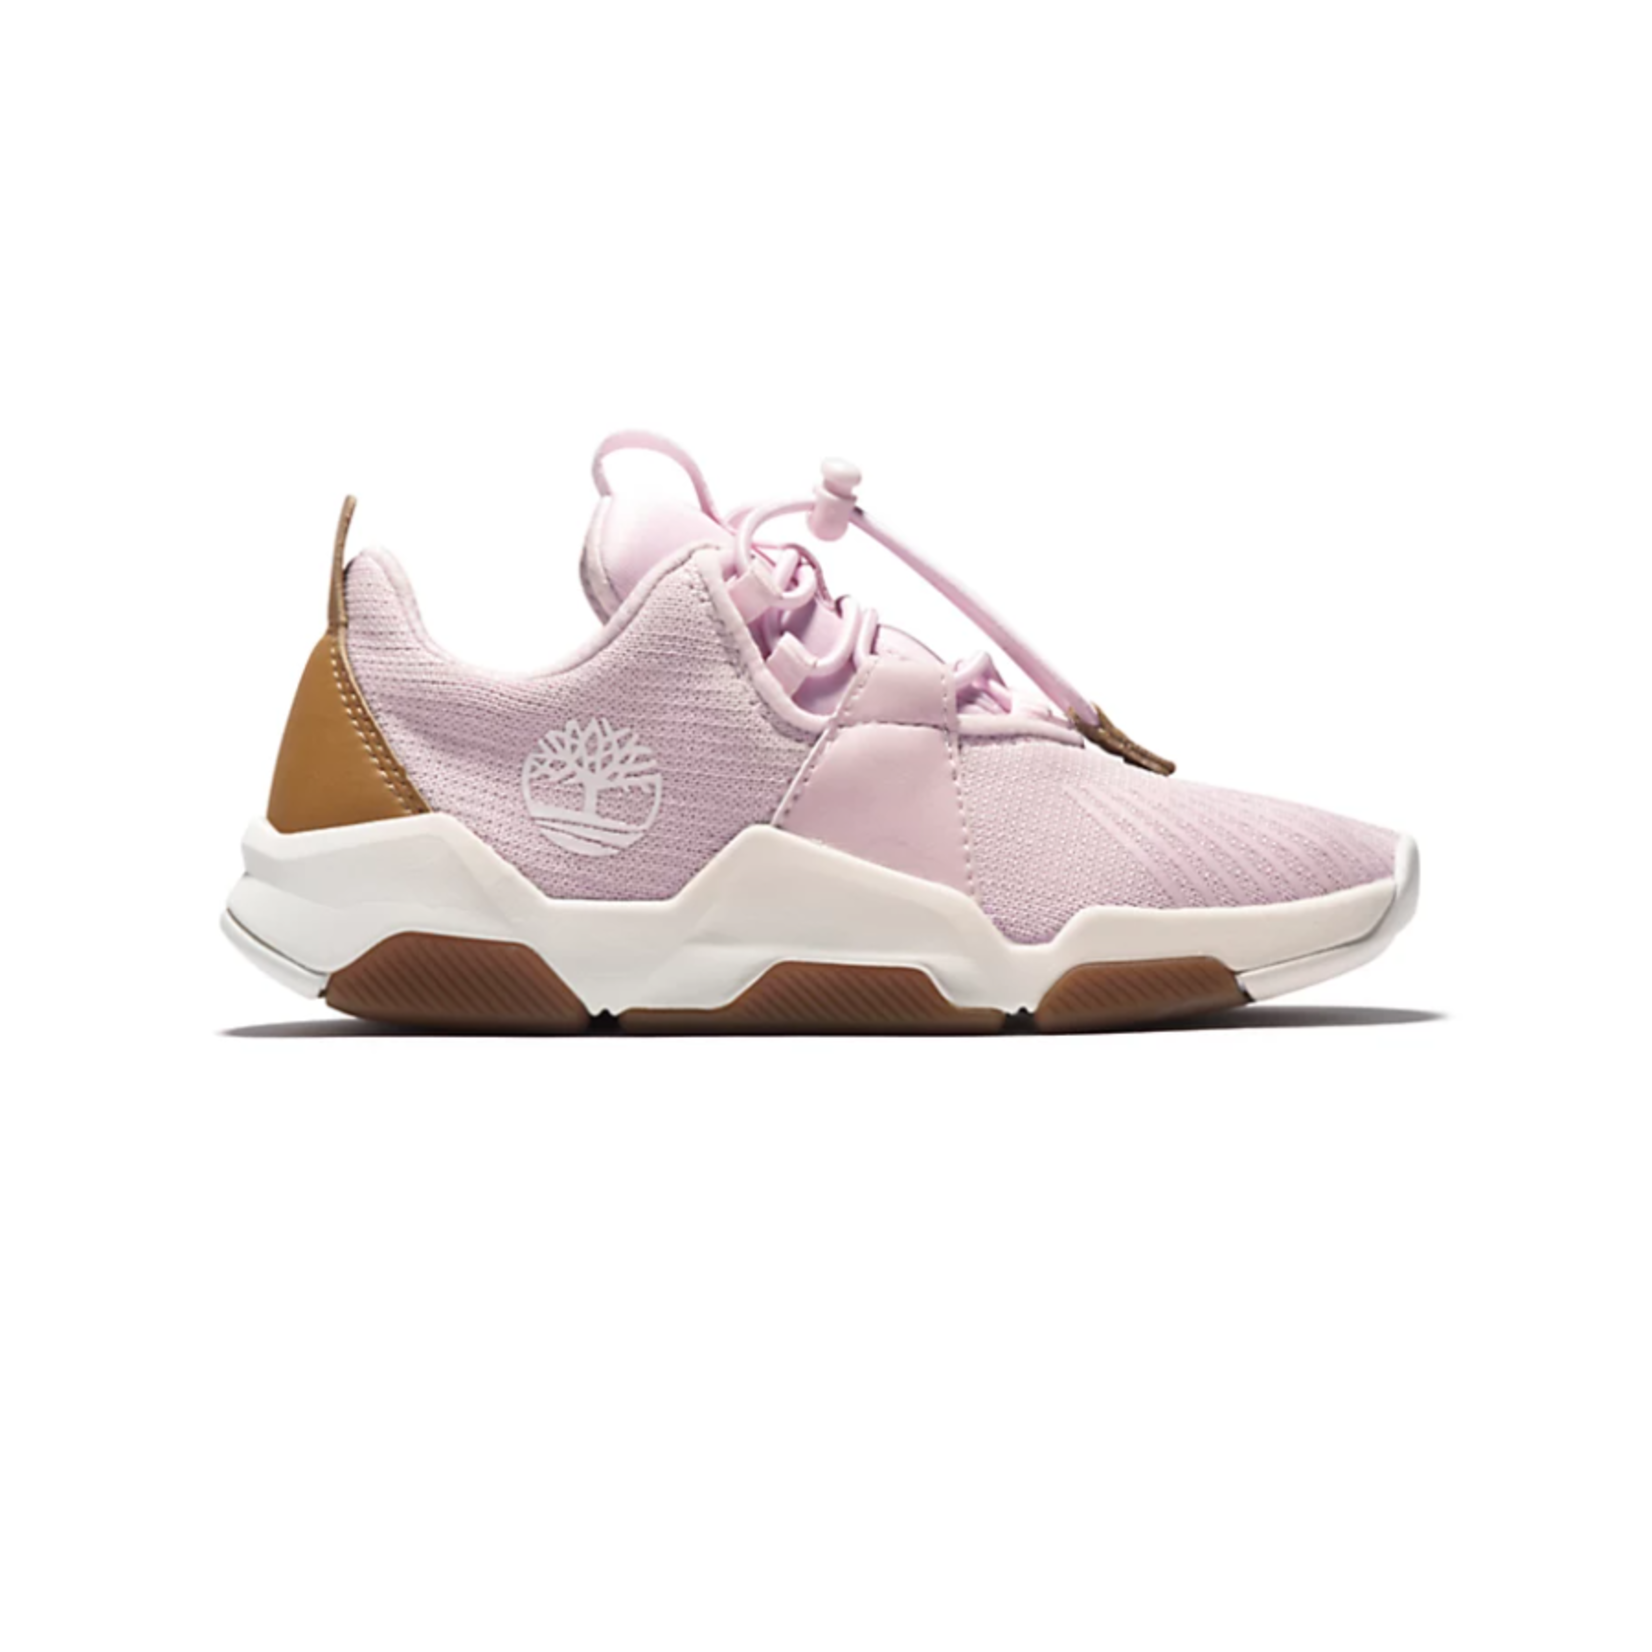 Timberland EARTH RALLY OXFORDSCHUH FÜR KINDER IN PINK